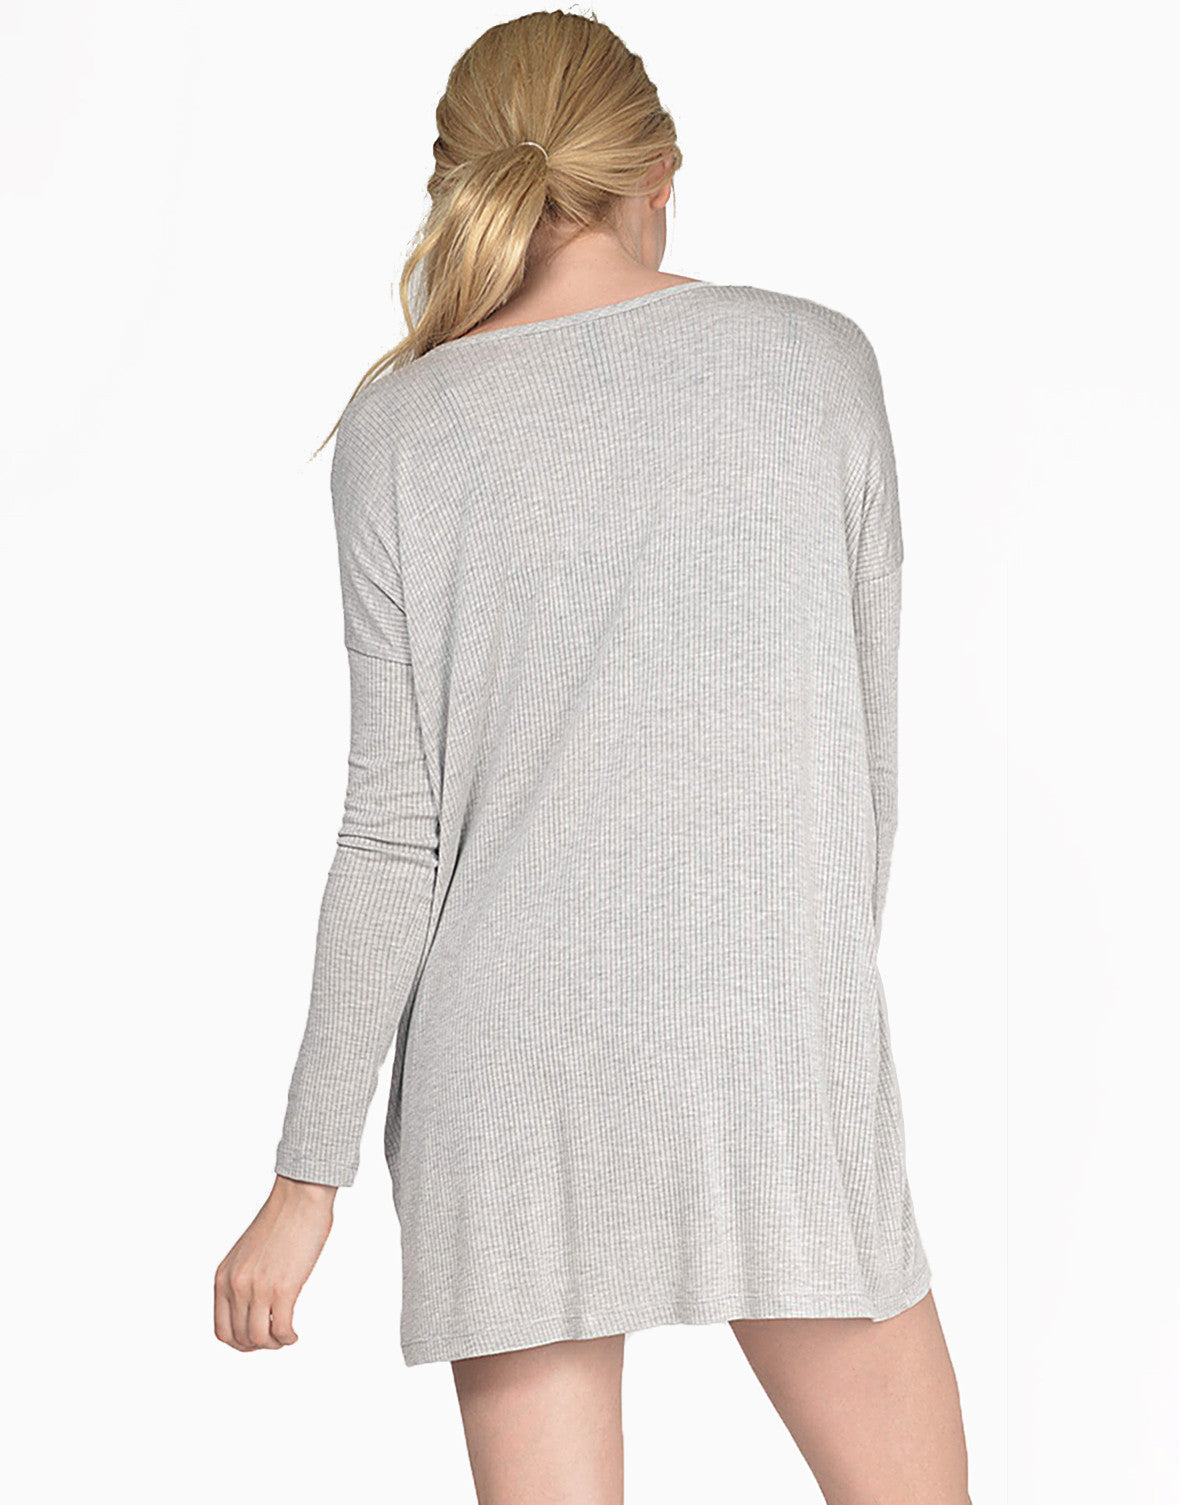 Back View of Oversized Lightweight Ribbed Cardigan